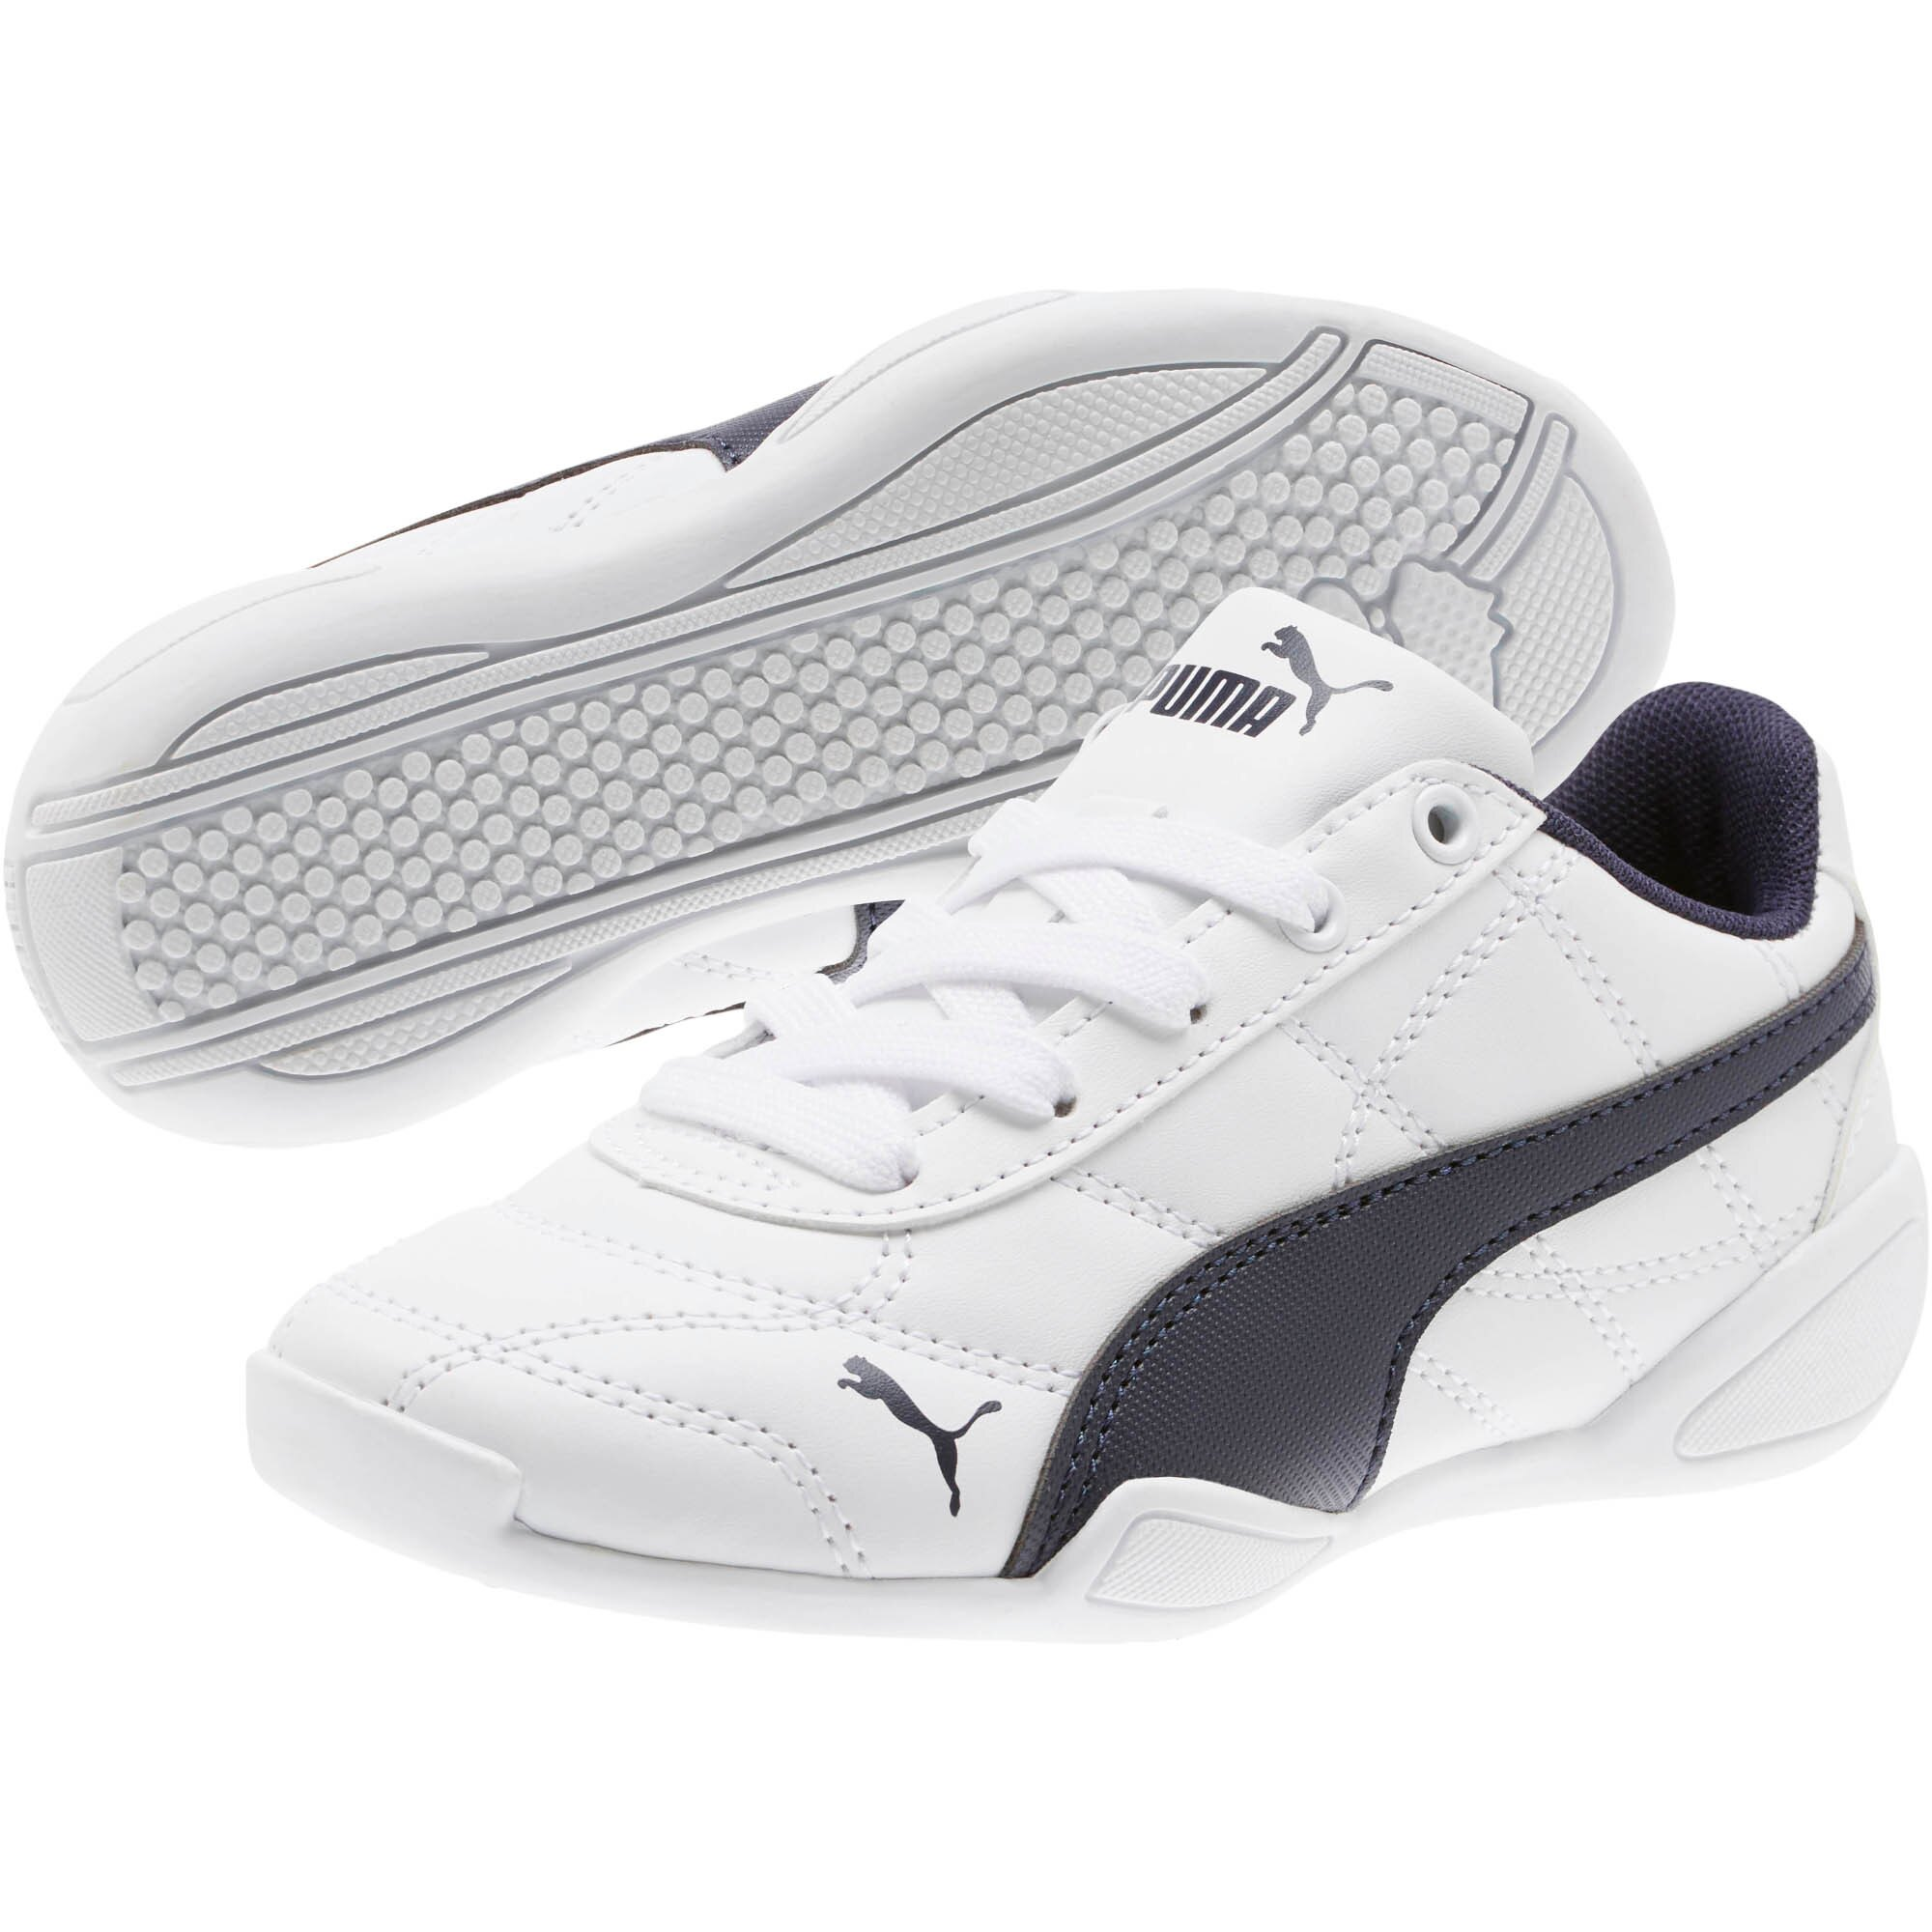 7be38b430492 Official Puma Store  PUMA Tune Cat 3 Shoes PS